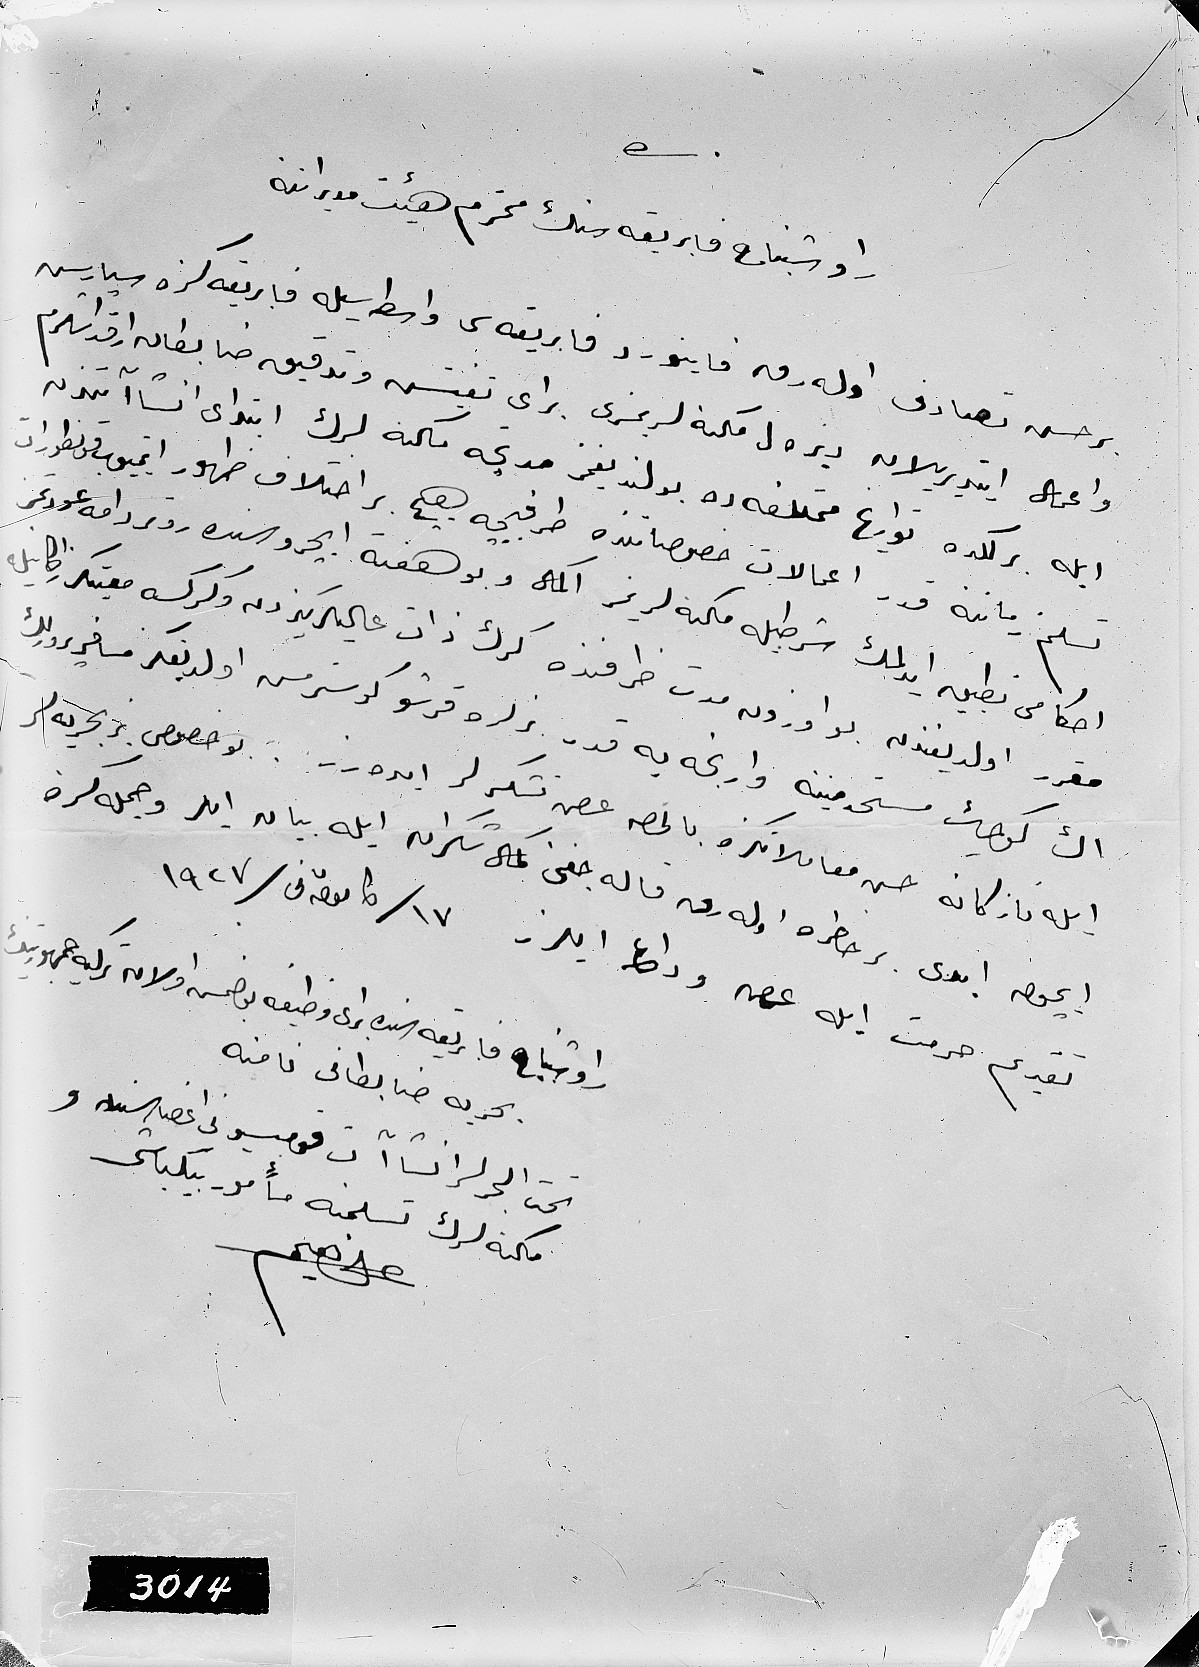 GFA 16/15167: Acceptance committee of the turkish navy, letter from Major Ali Naim